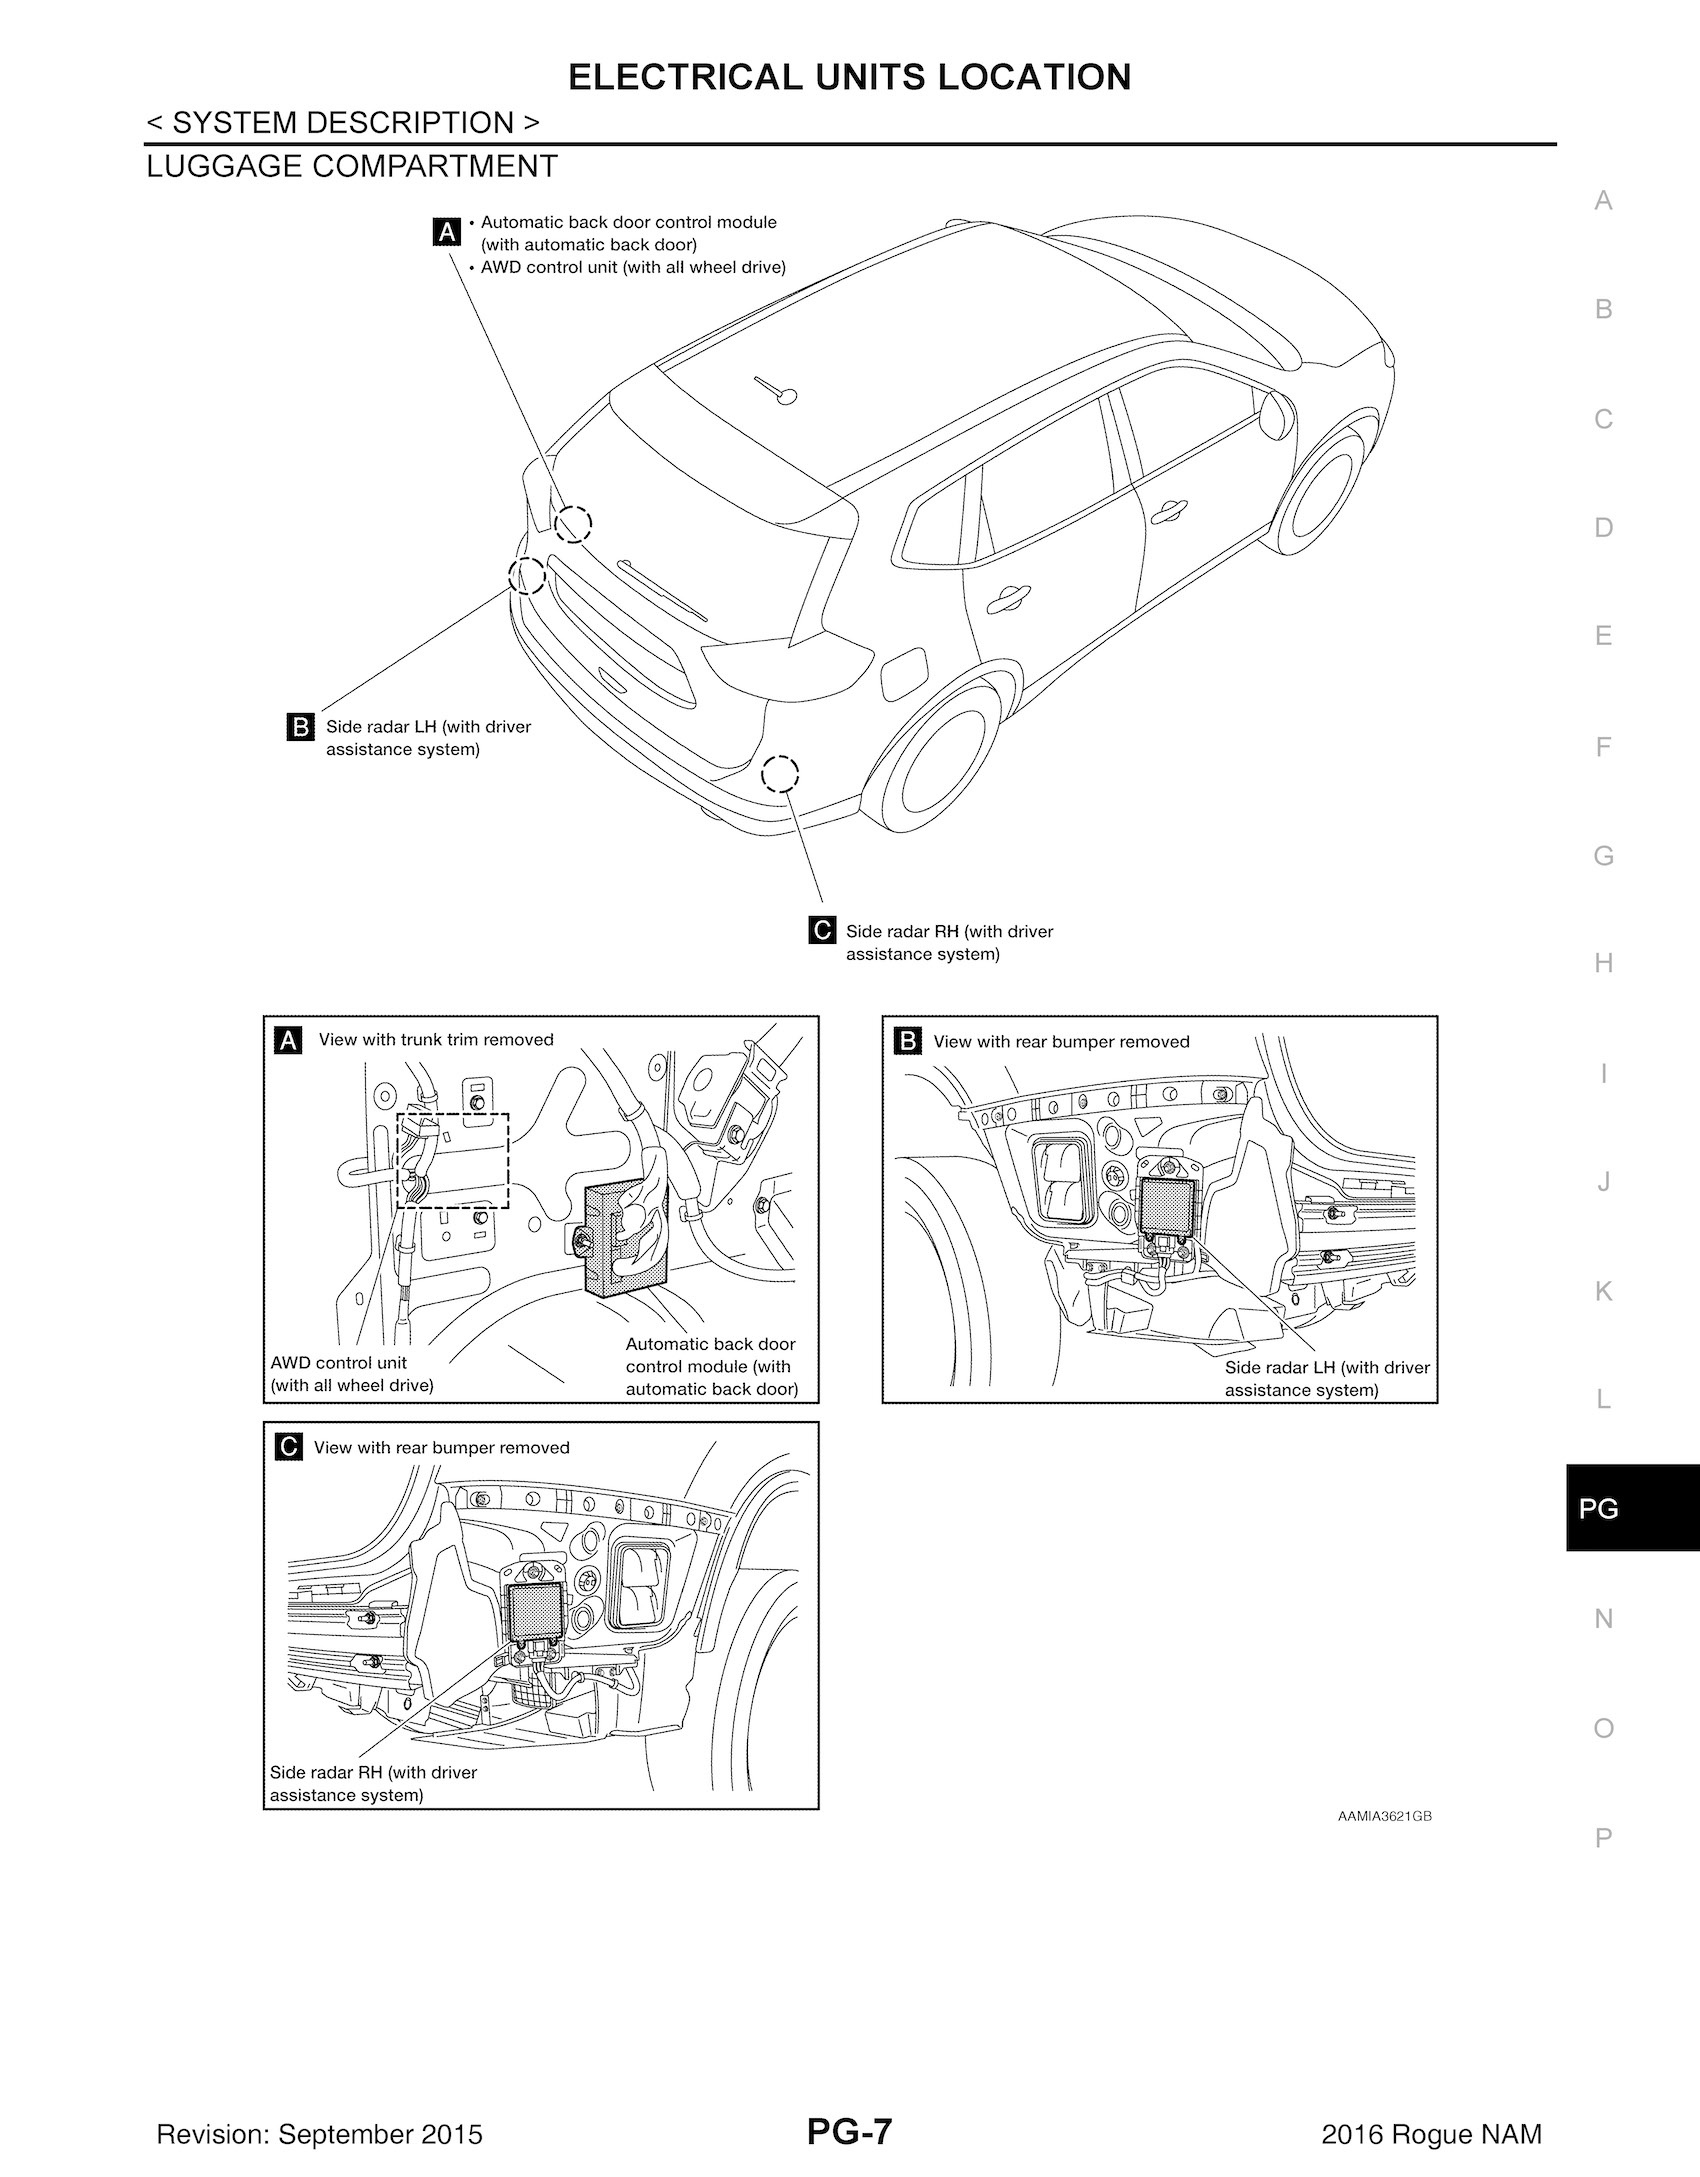 Toyota RAV4 Service Manual: Components